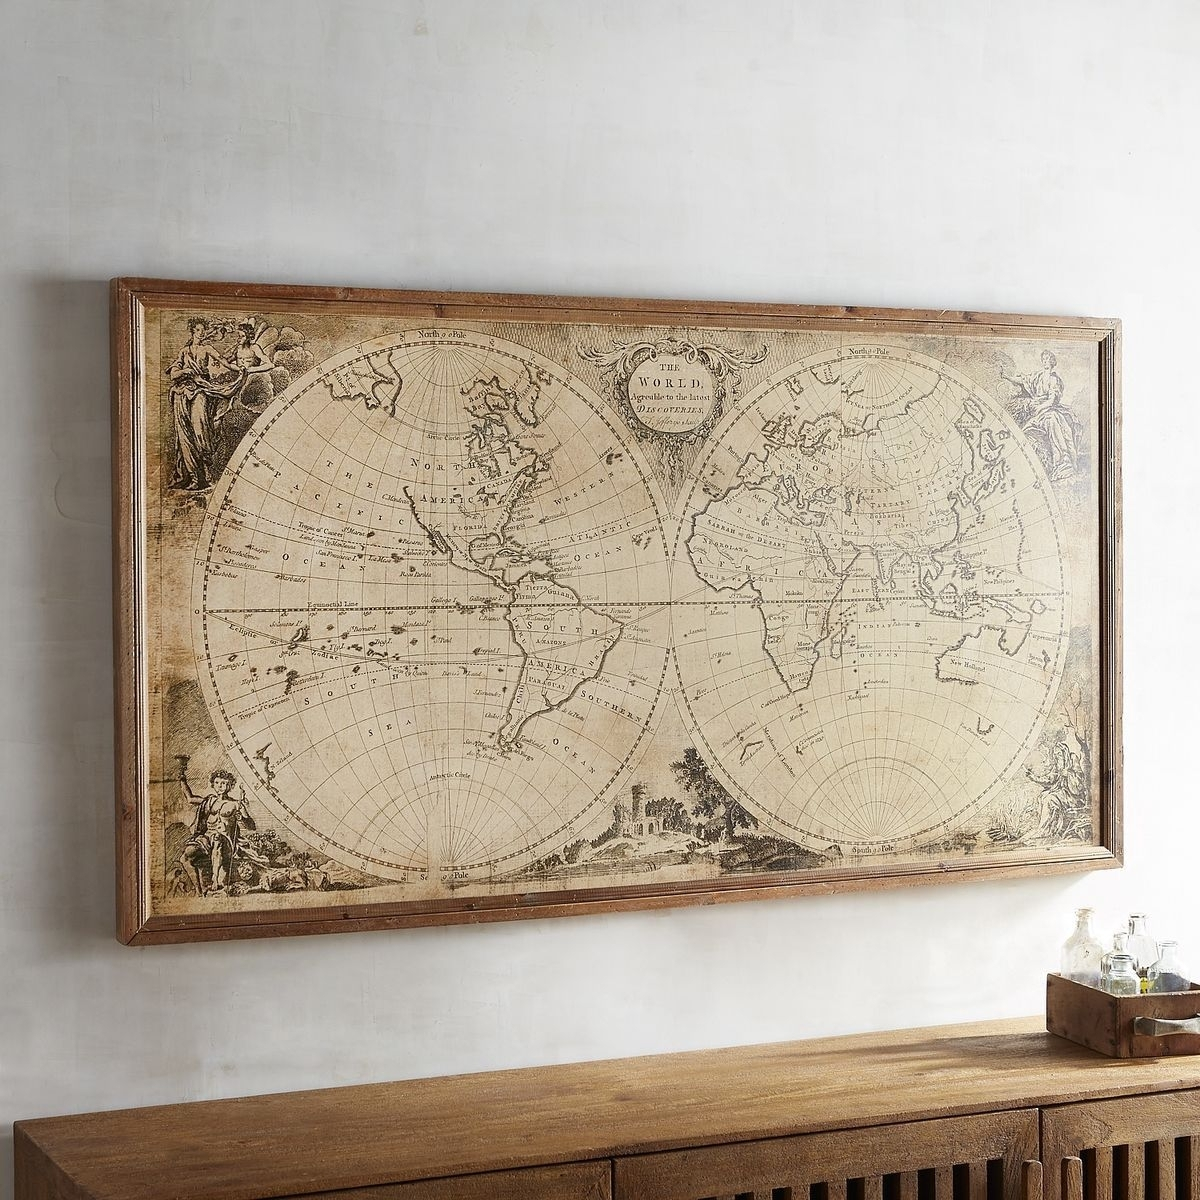 Wood Pier Framed Wall Art Pier 1 Imports Vintage Style World Map In Cool Map Wall Art (Photo 15 of 20)